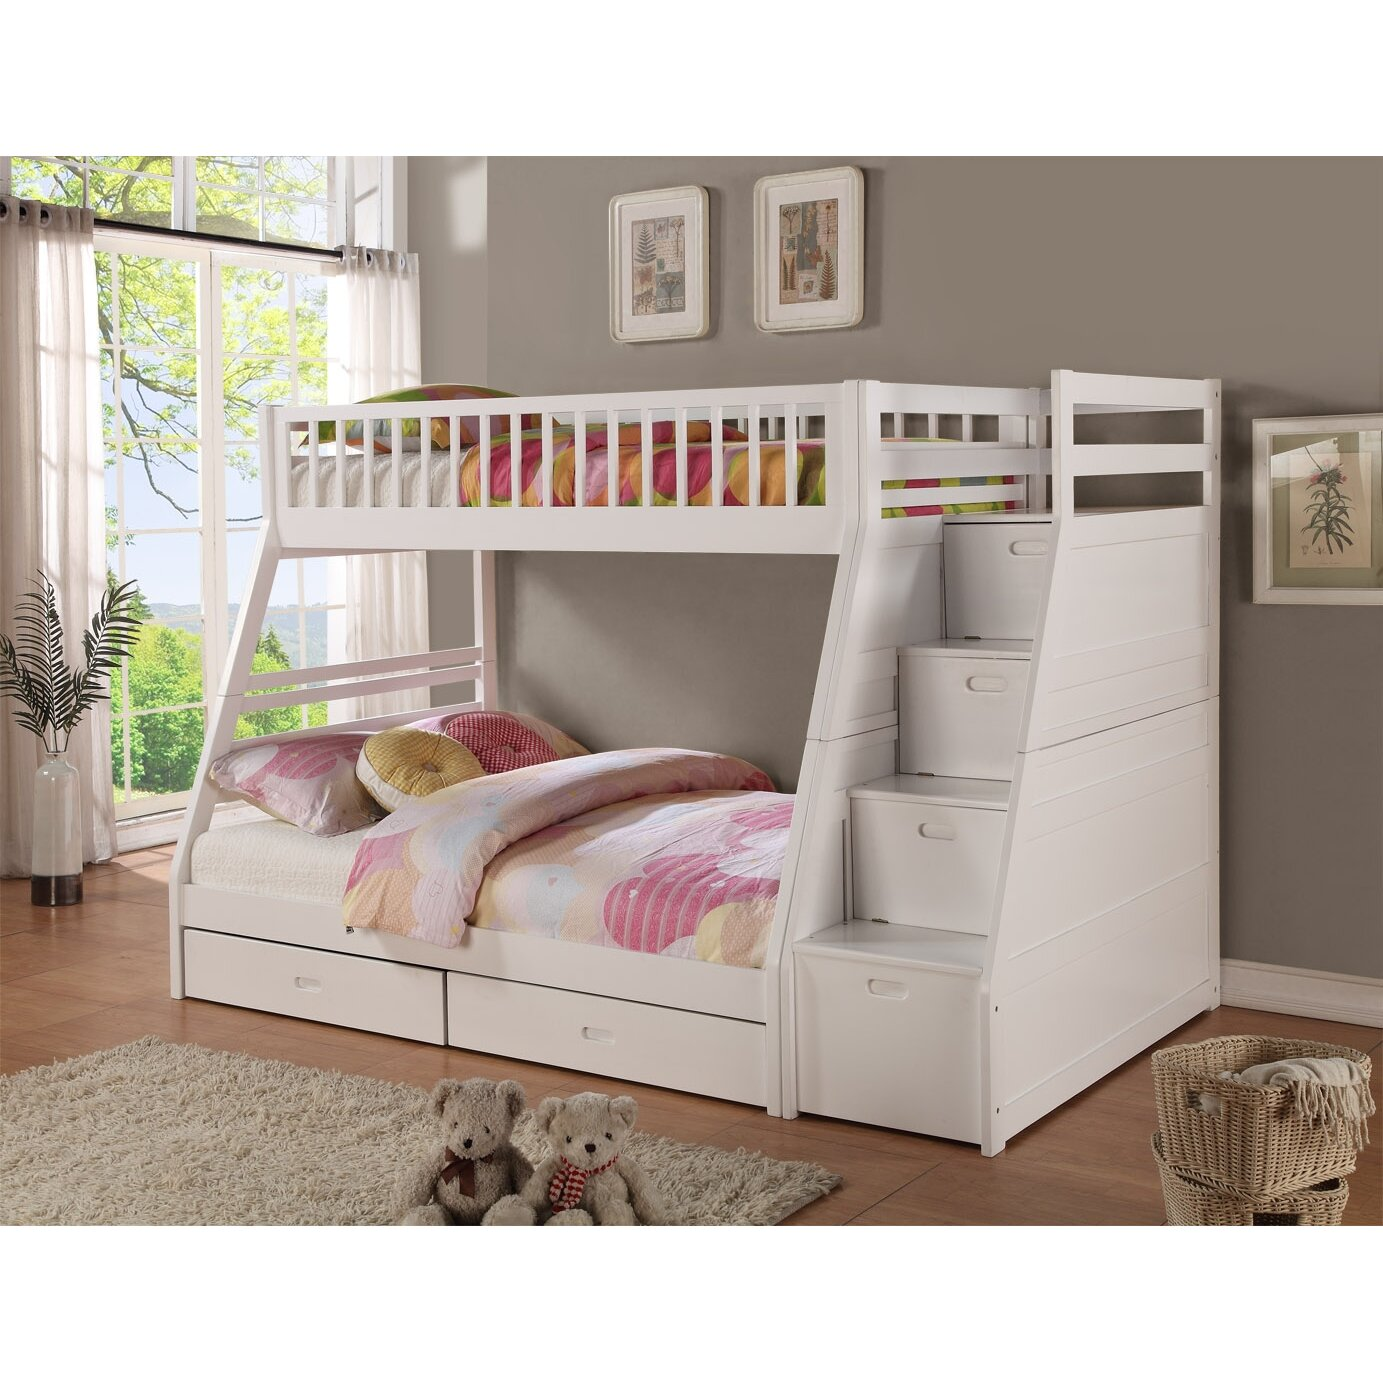 Twin Over Full Bunk Bed With Stairs And Trundle - Pierre twin over full bunk bed with storage